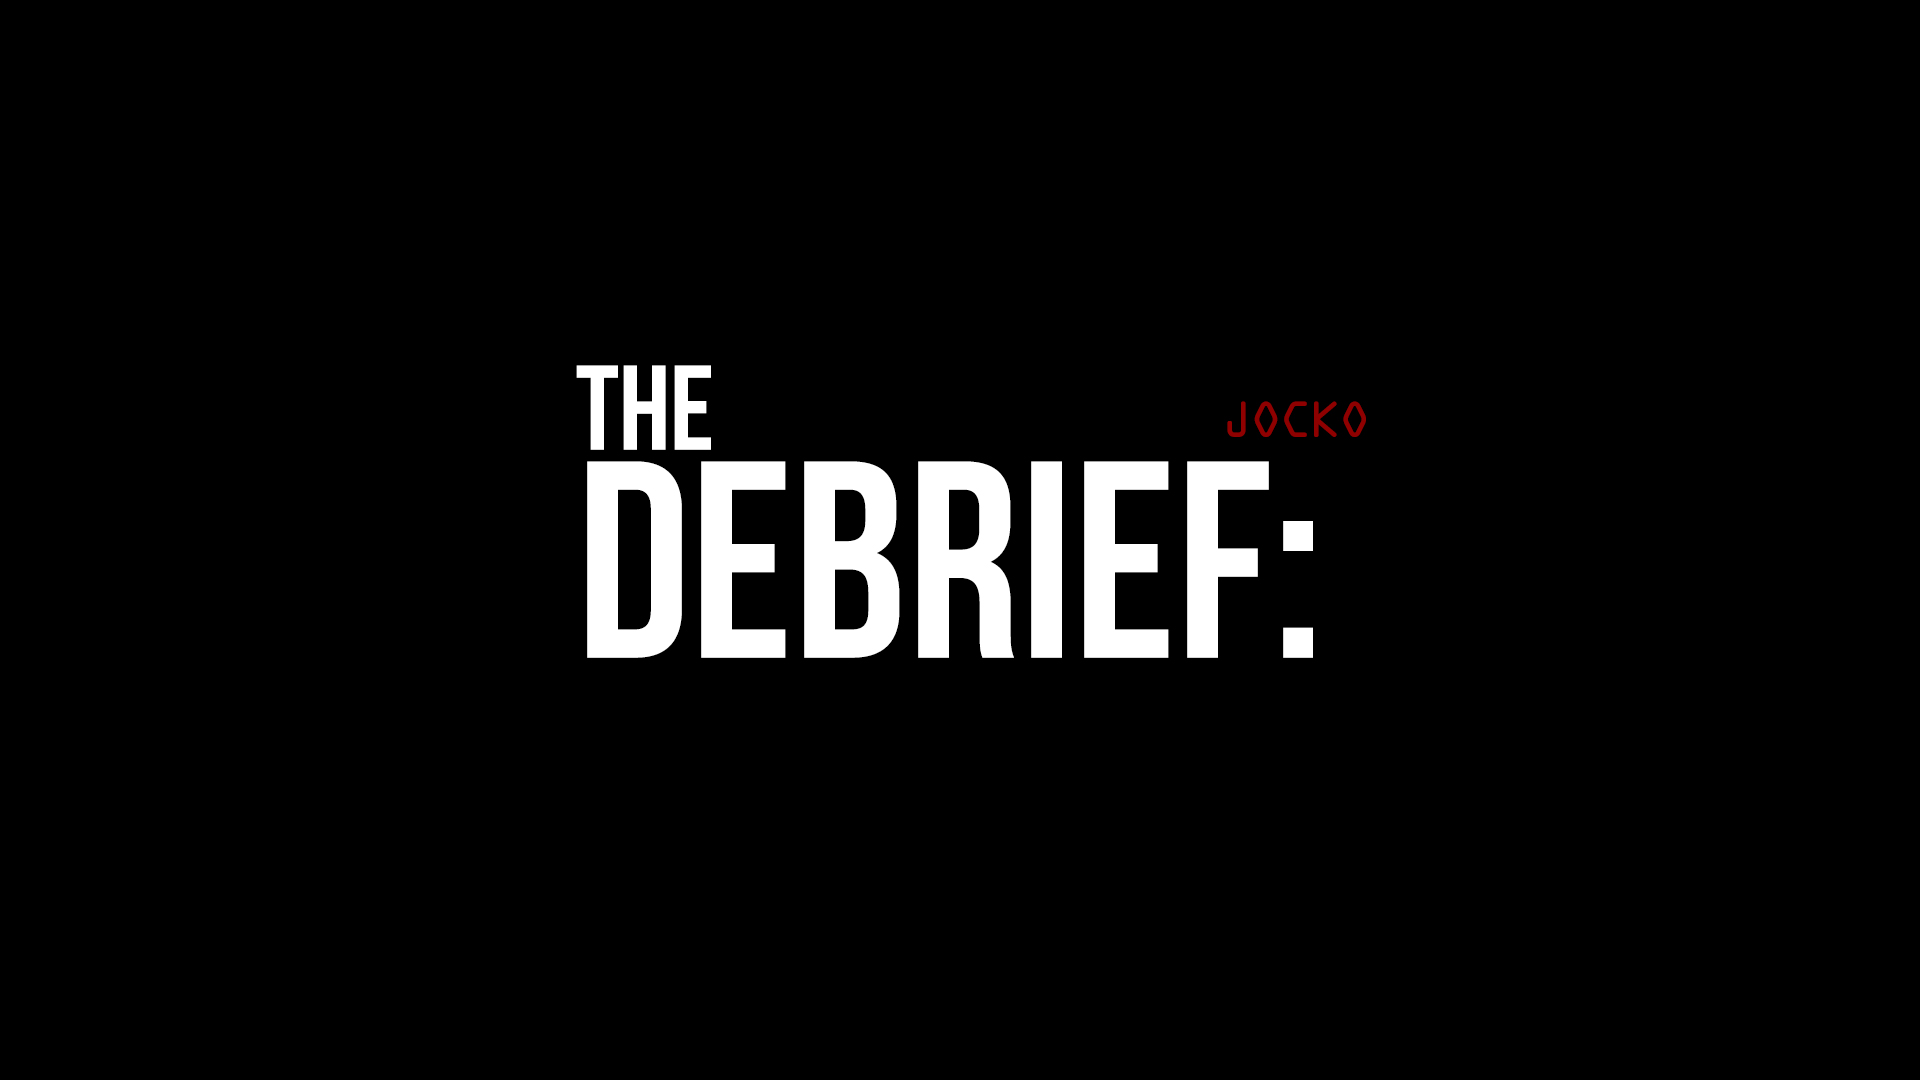 The Debrief w/ Jocko and Dave Berke #4: When The Boss's Boss Skips Down The Chain for All The Info